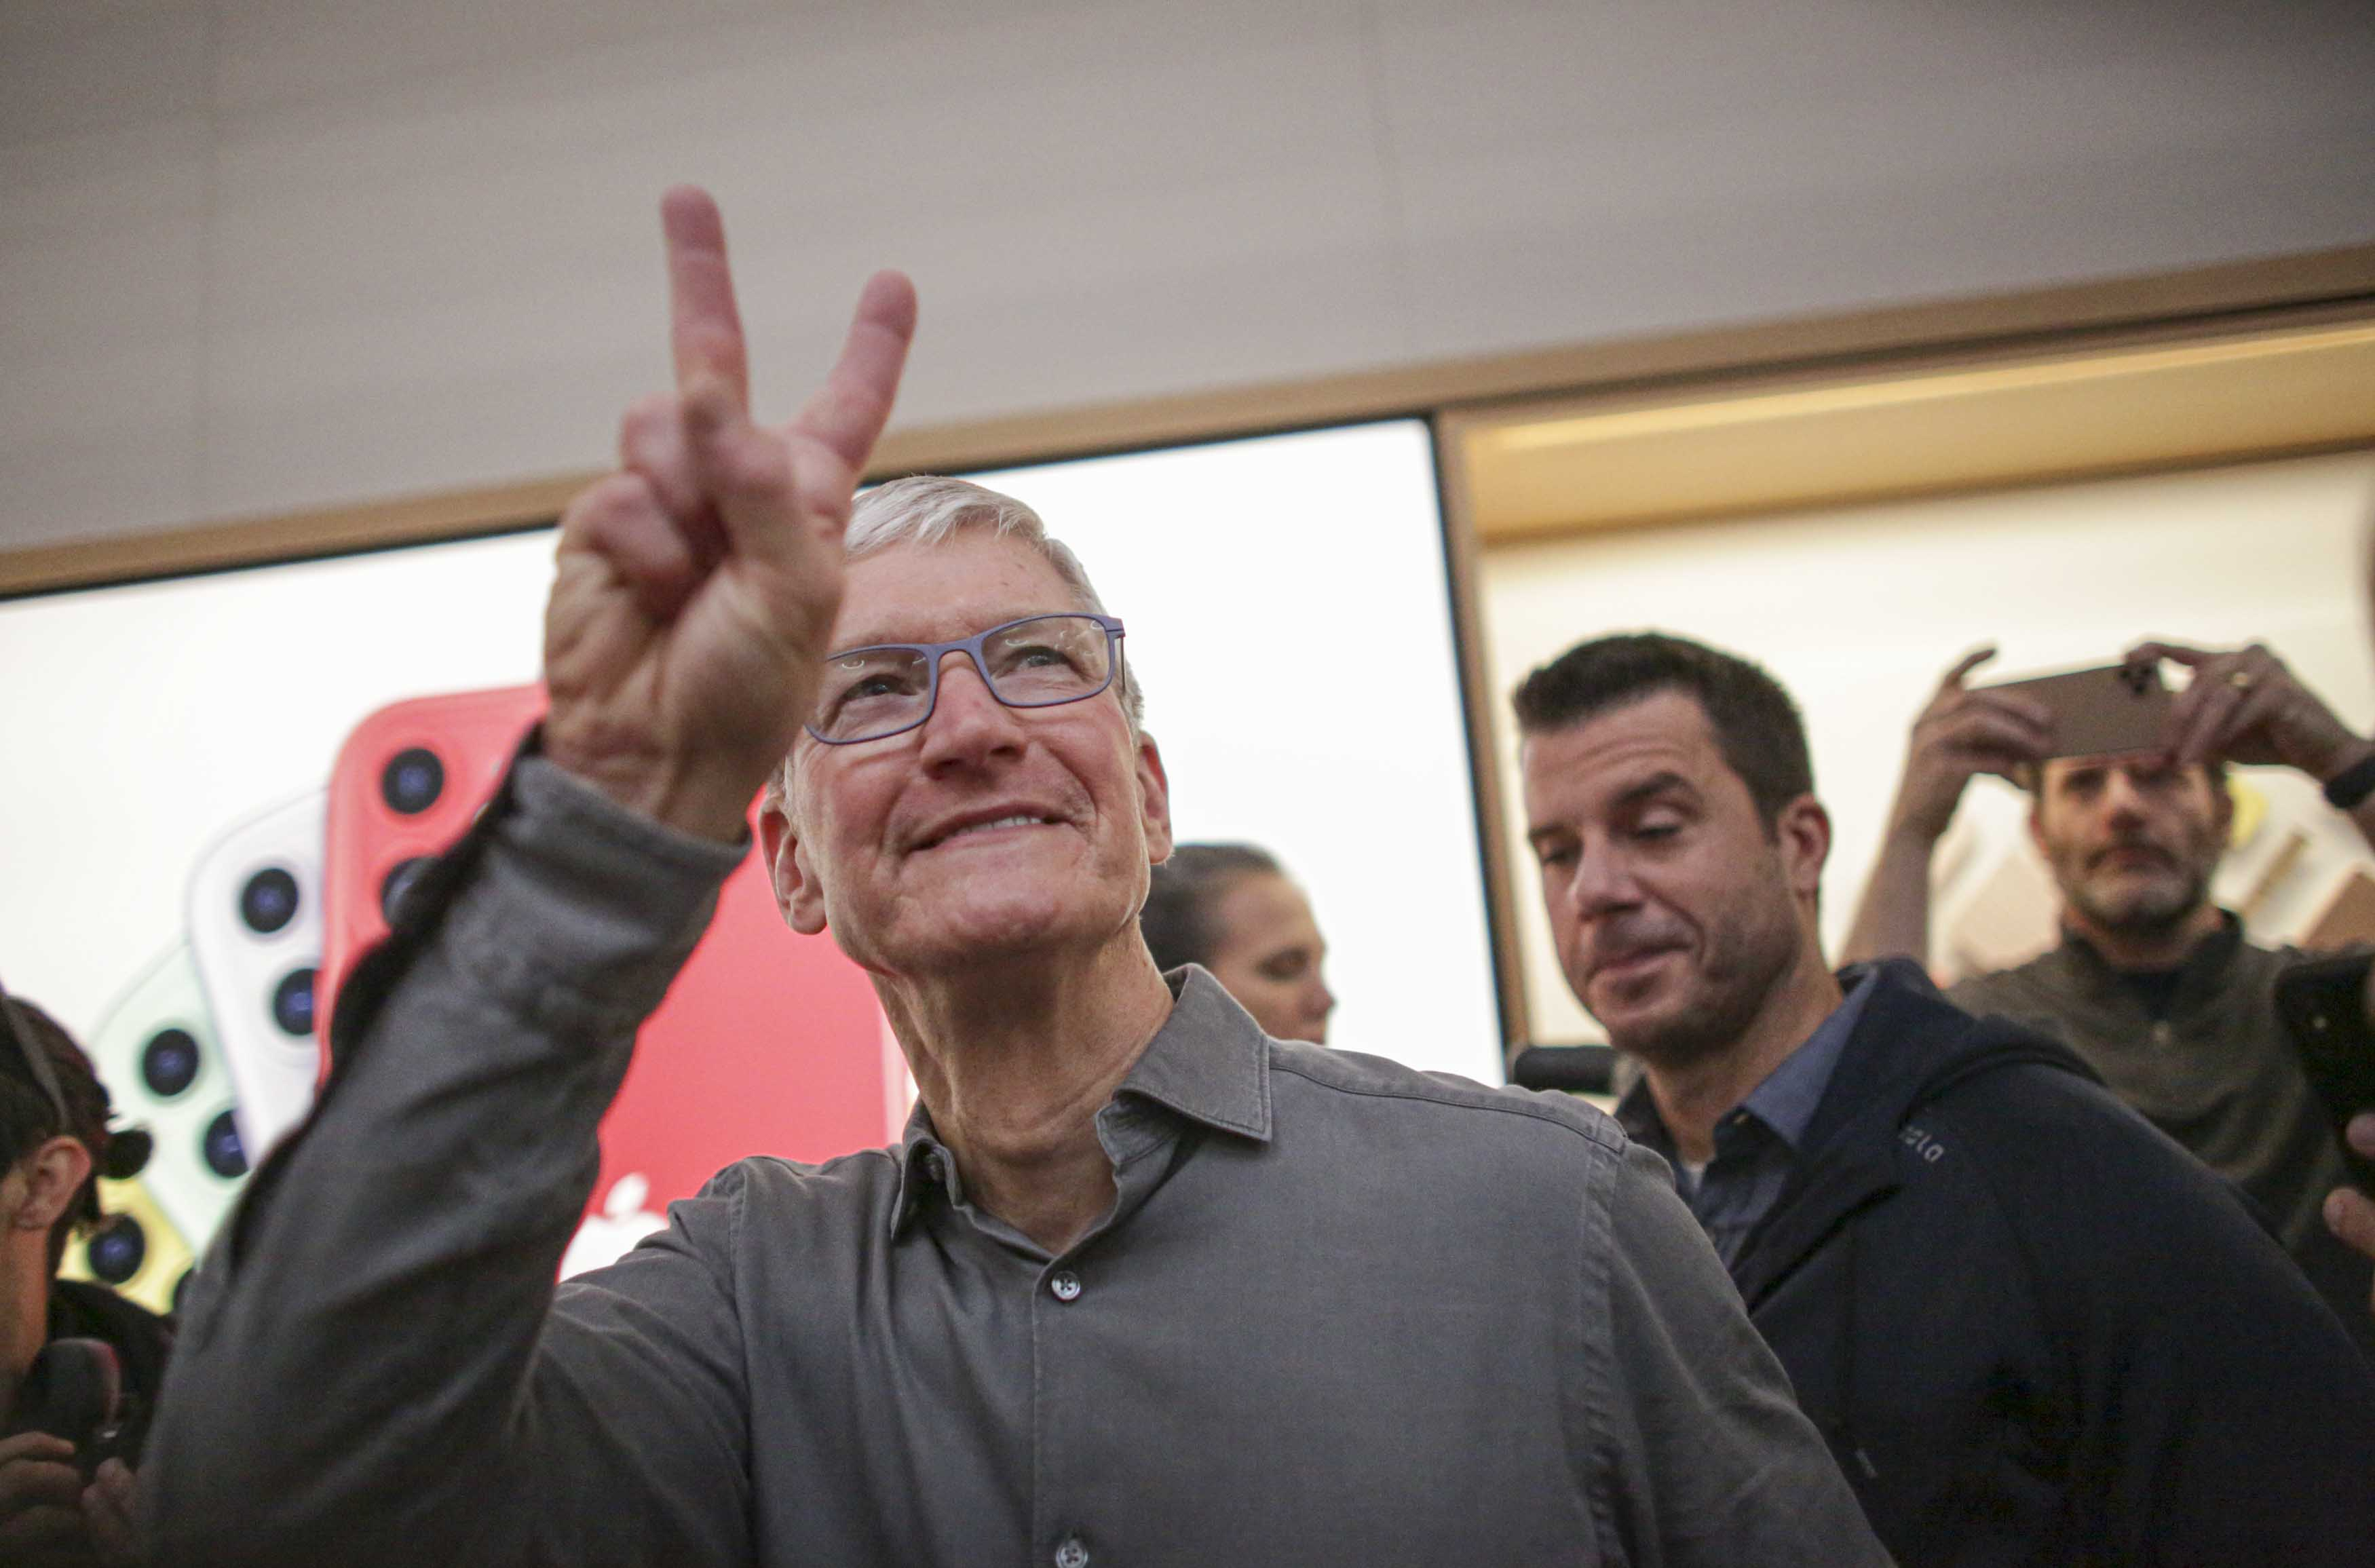 Analyst sees 'bull case' of $400 for Apple, citing 5g 'super cycle'